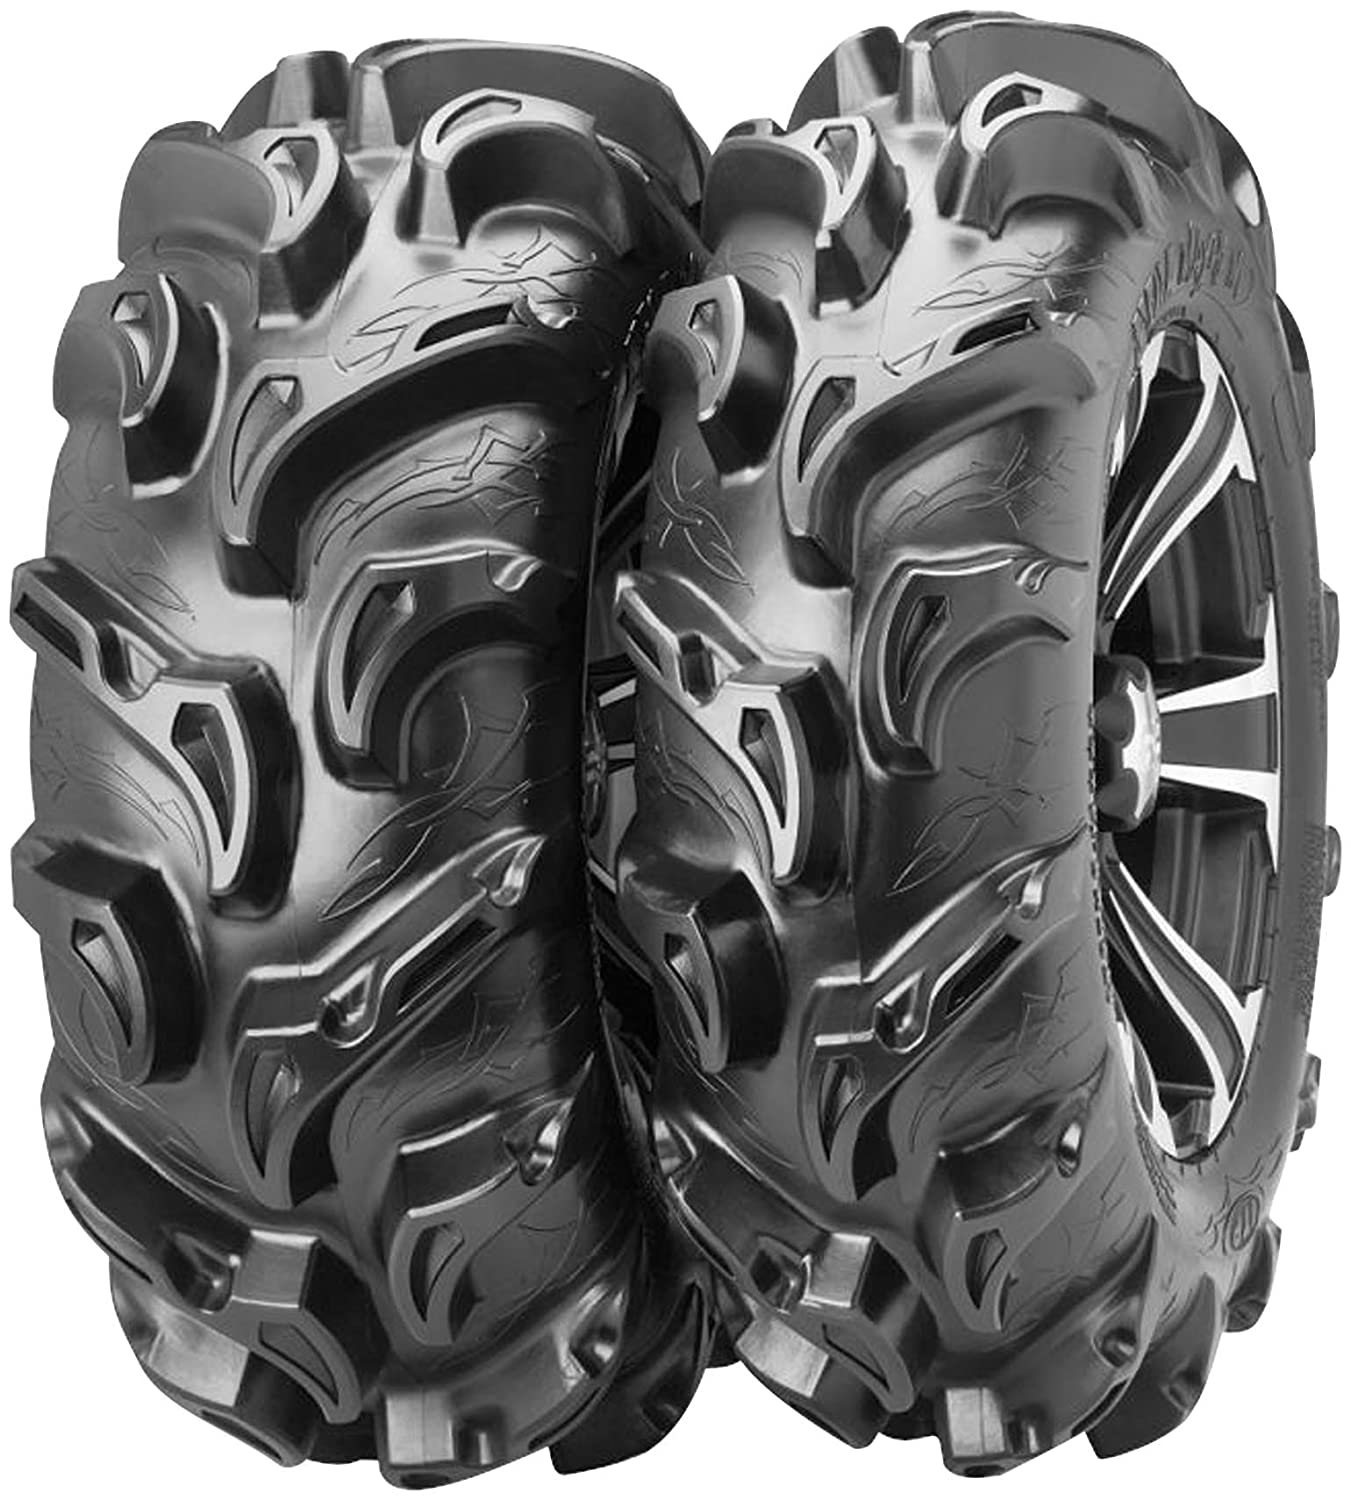 cheap mud tires-ITP Mega Mayhem Mud Terrain ATV Tire